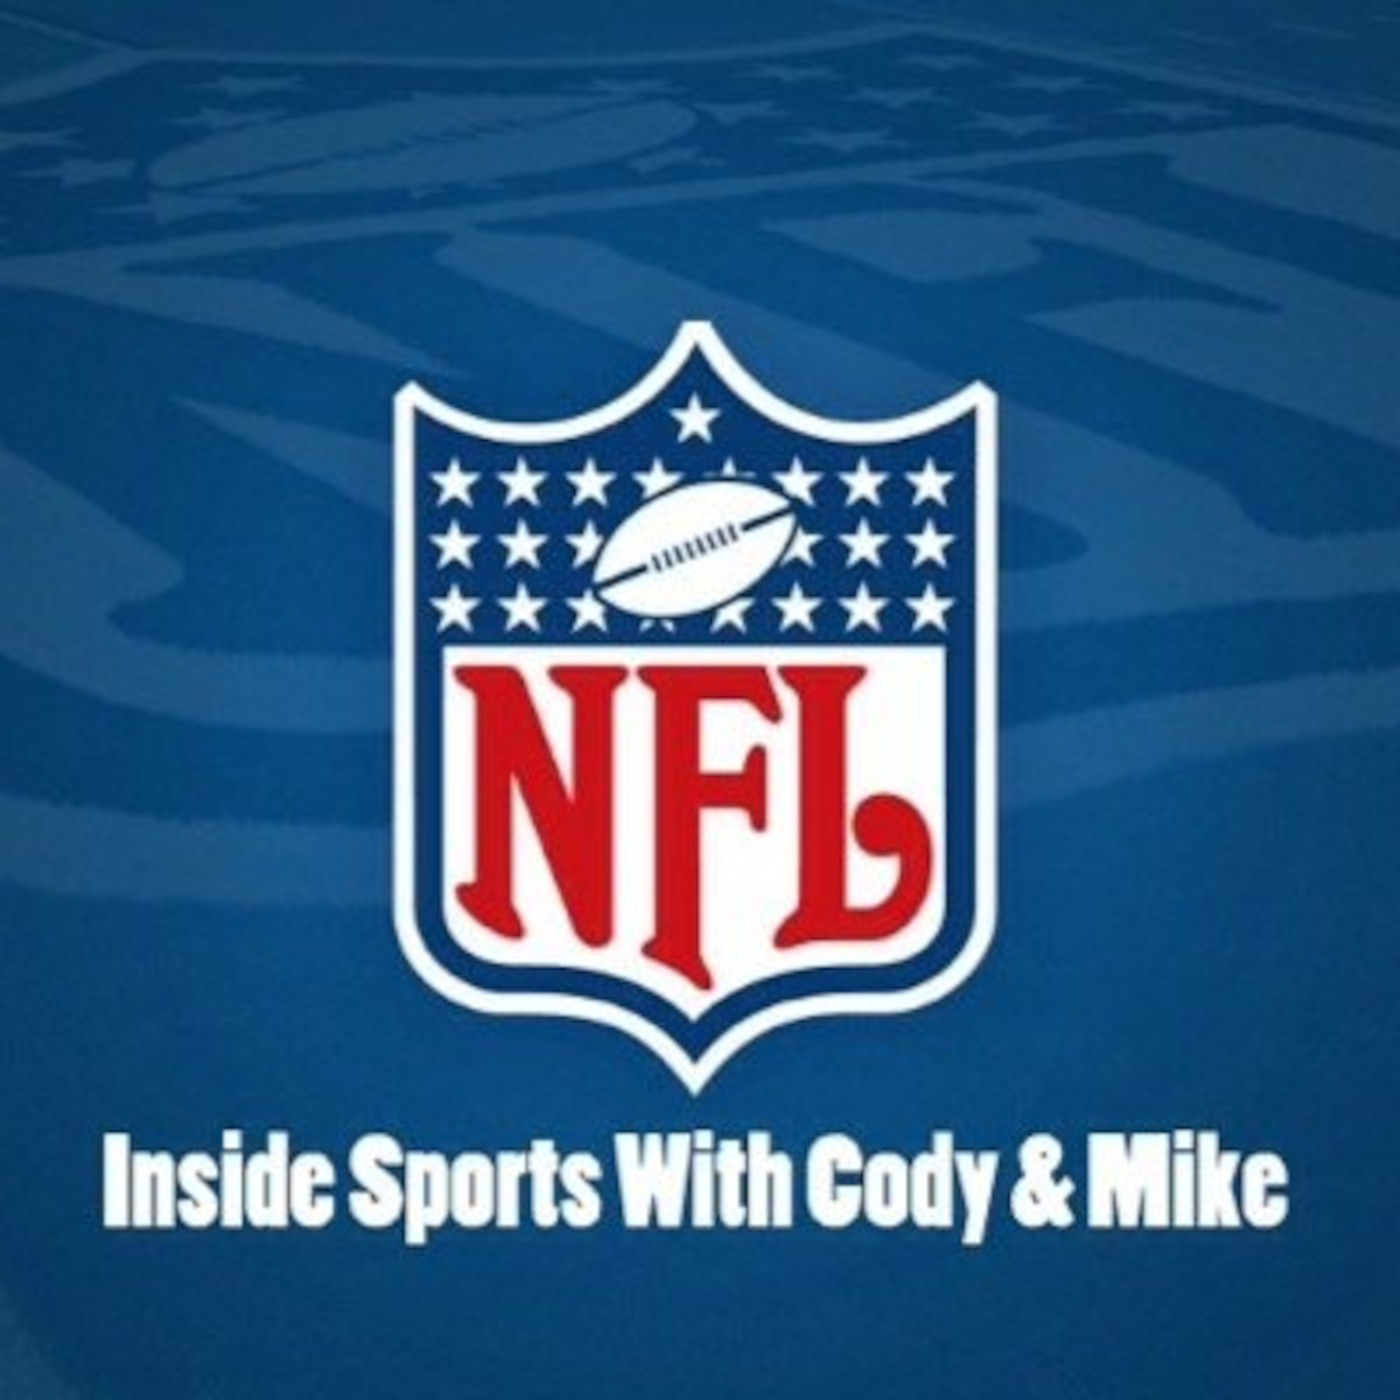 INSIDE SPORTS WITH CODY AND MIKE